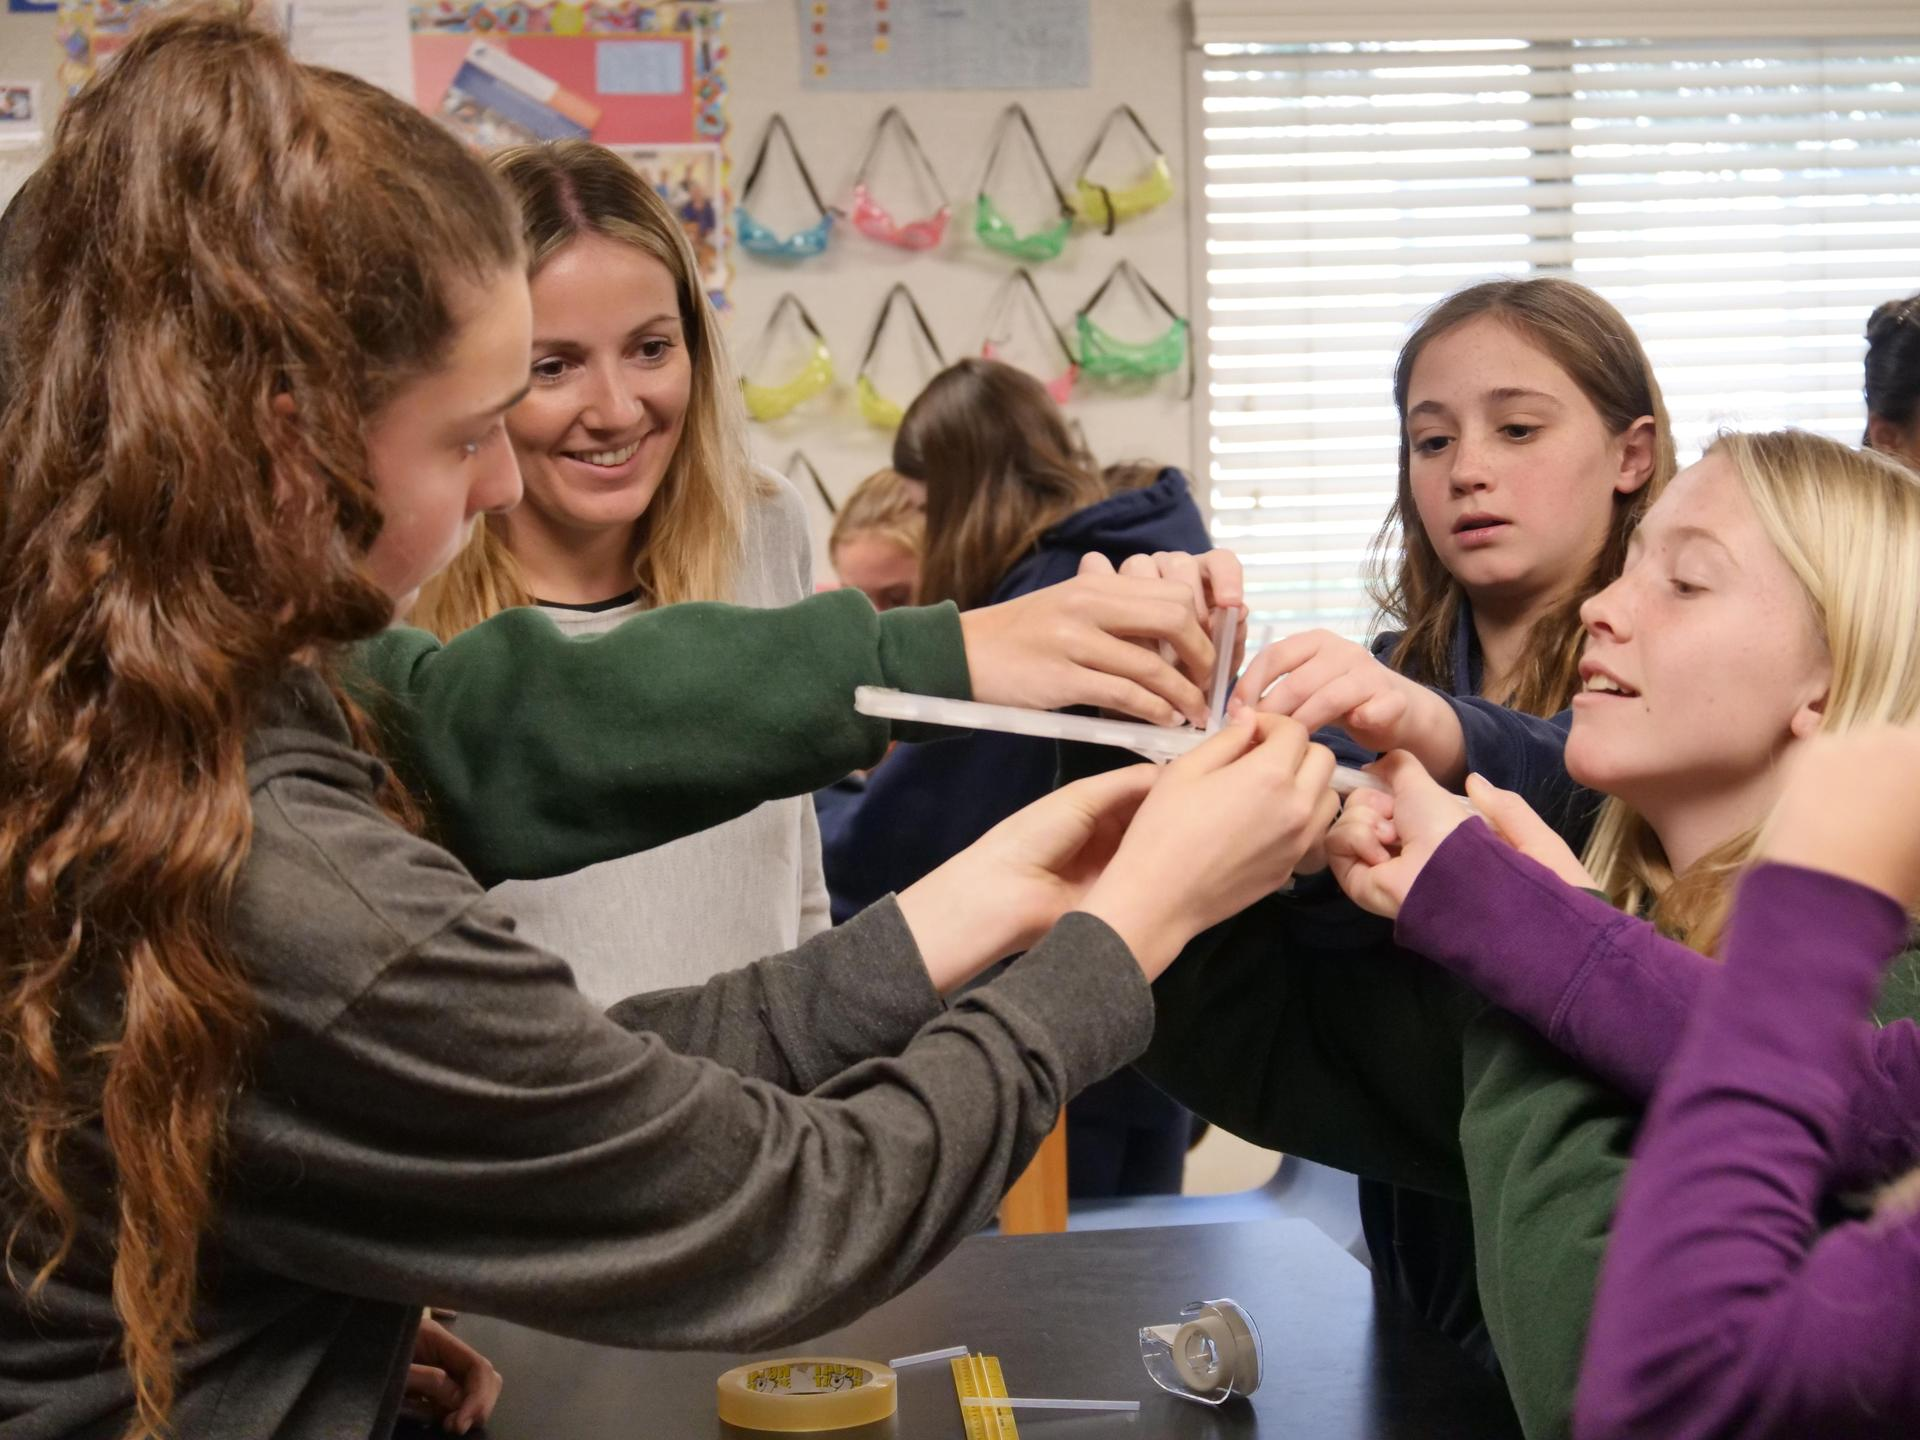 Middle school students take part in a group STEM activity.